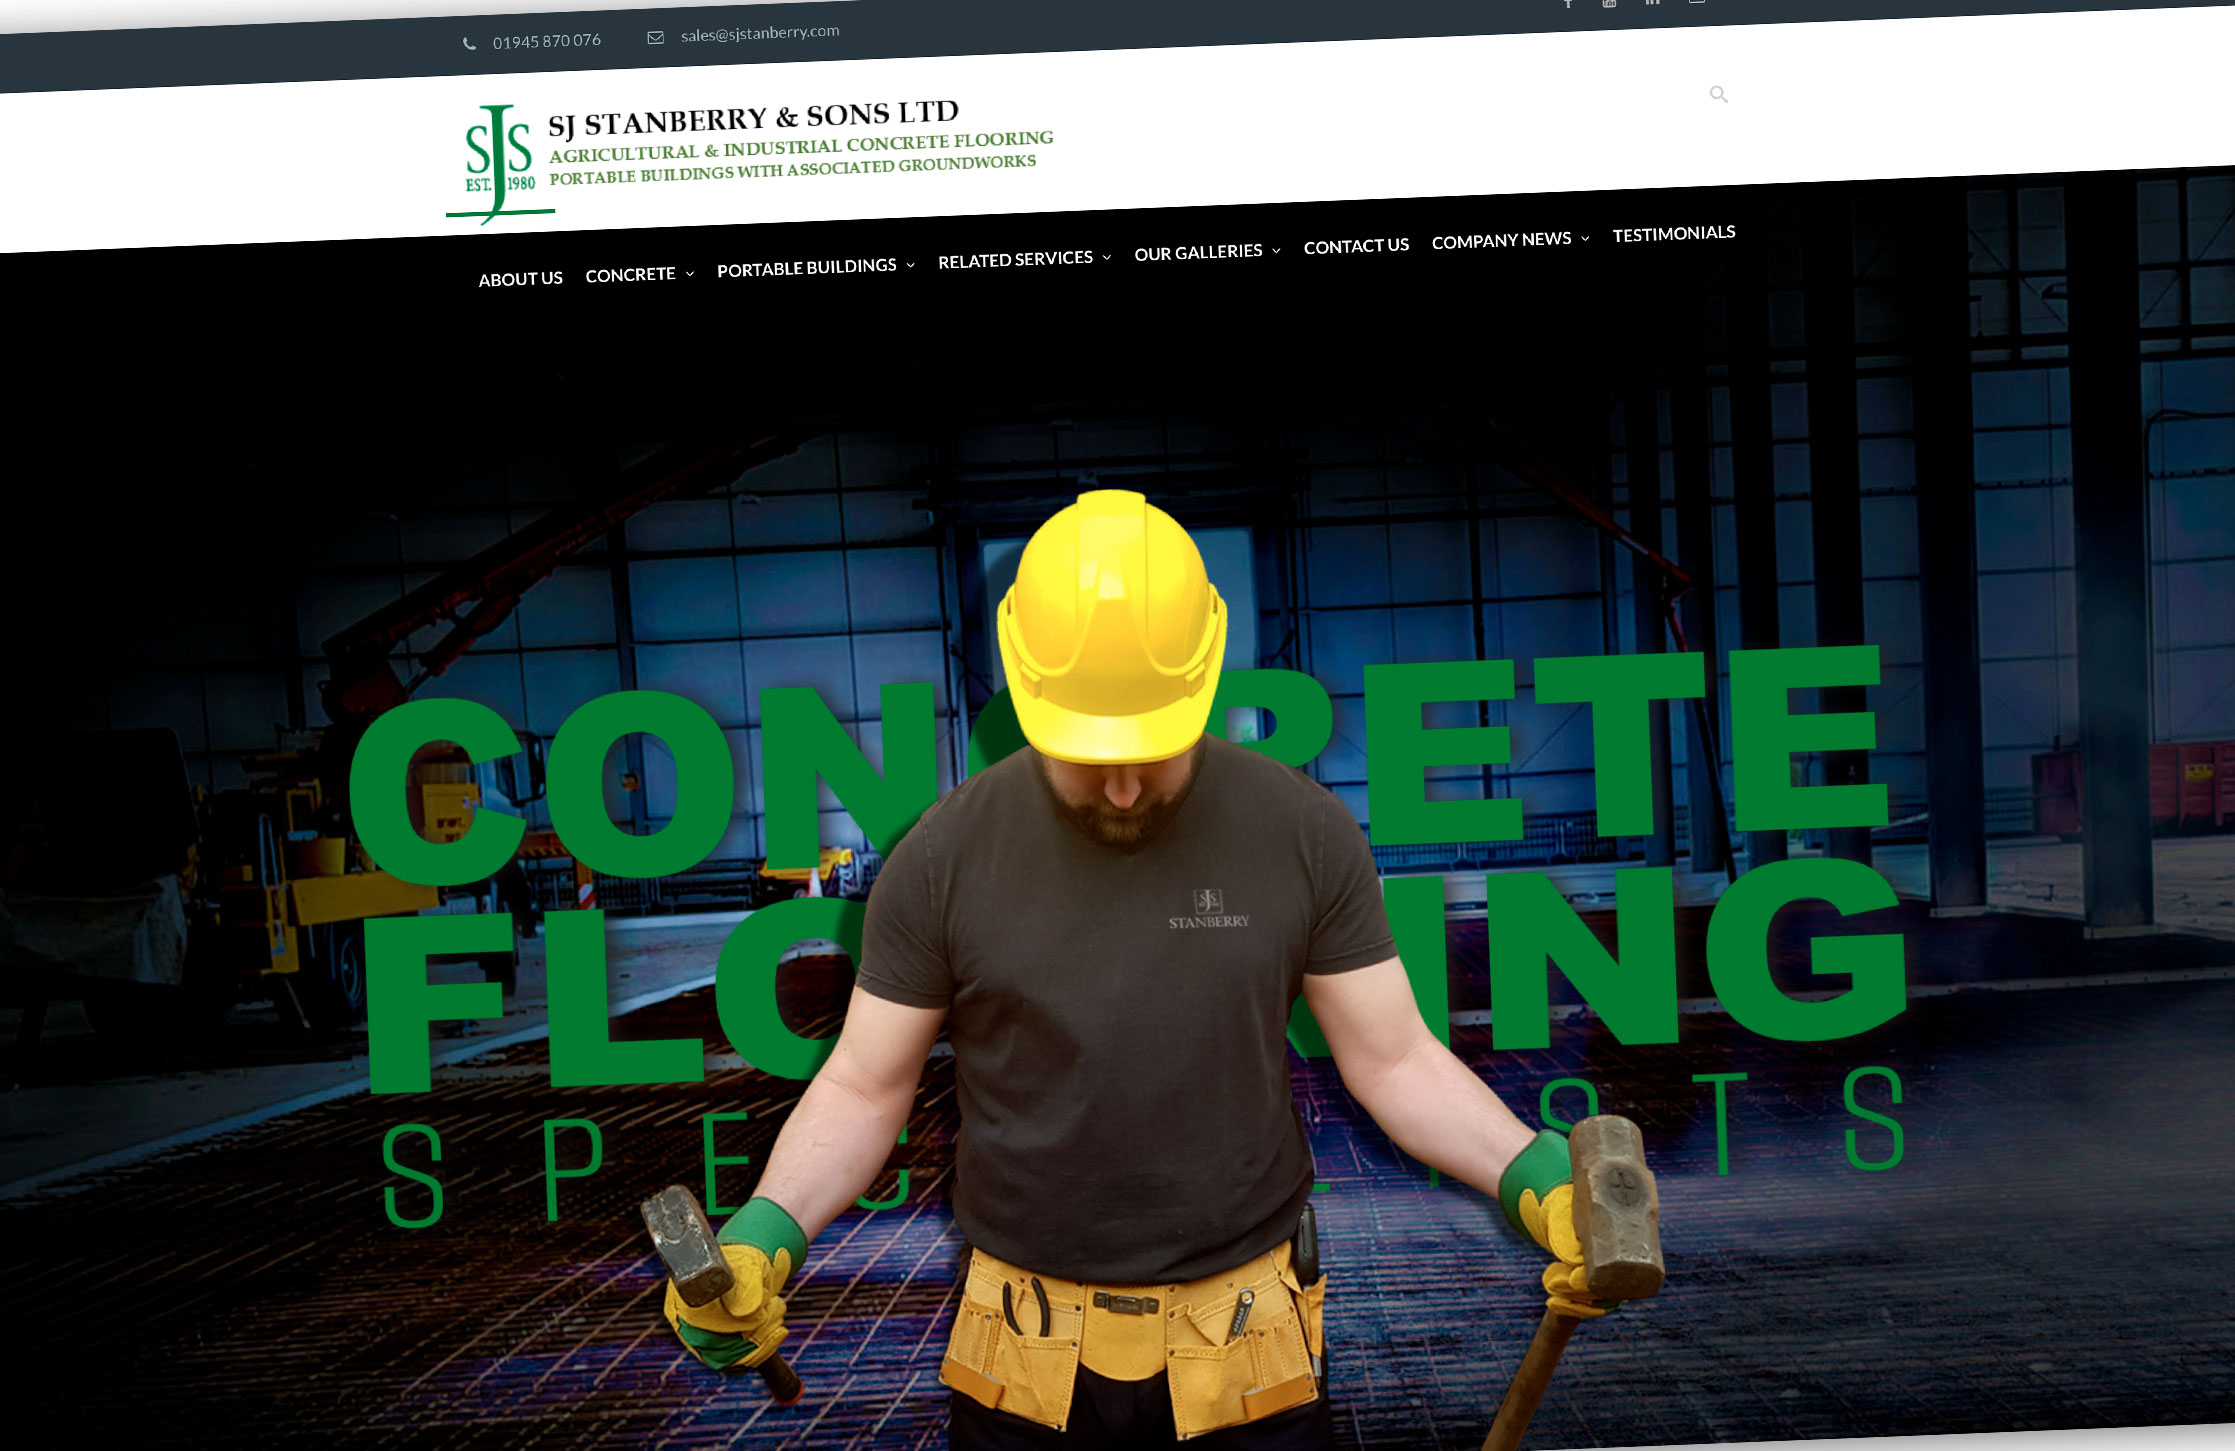 SJ Stanberry concrete flooring specialists